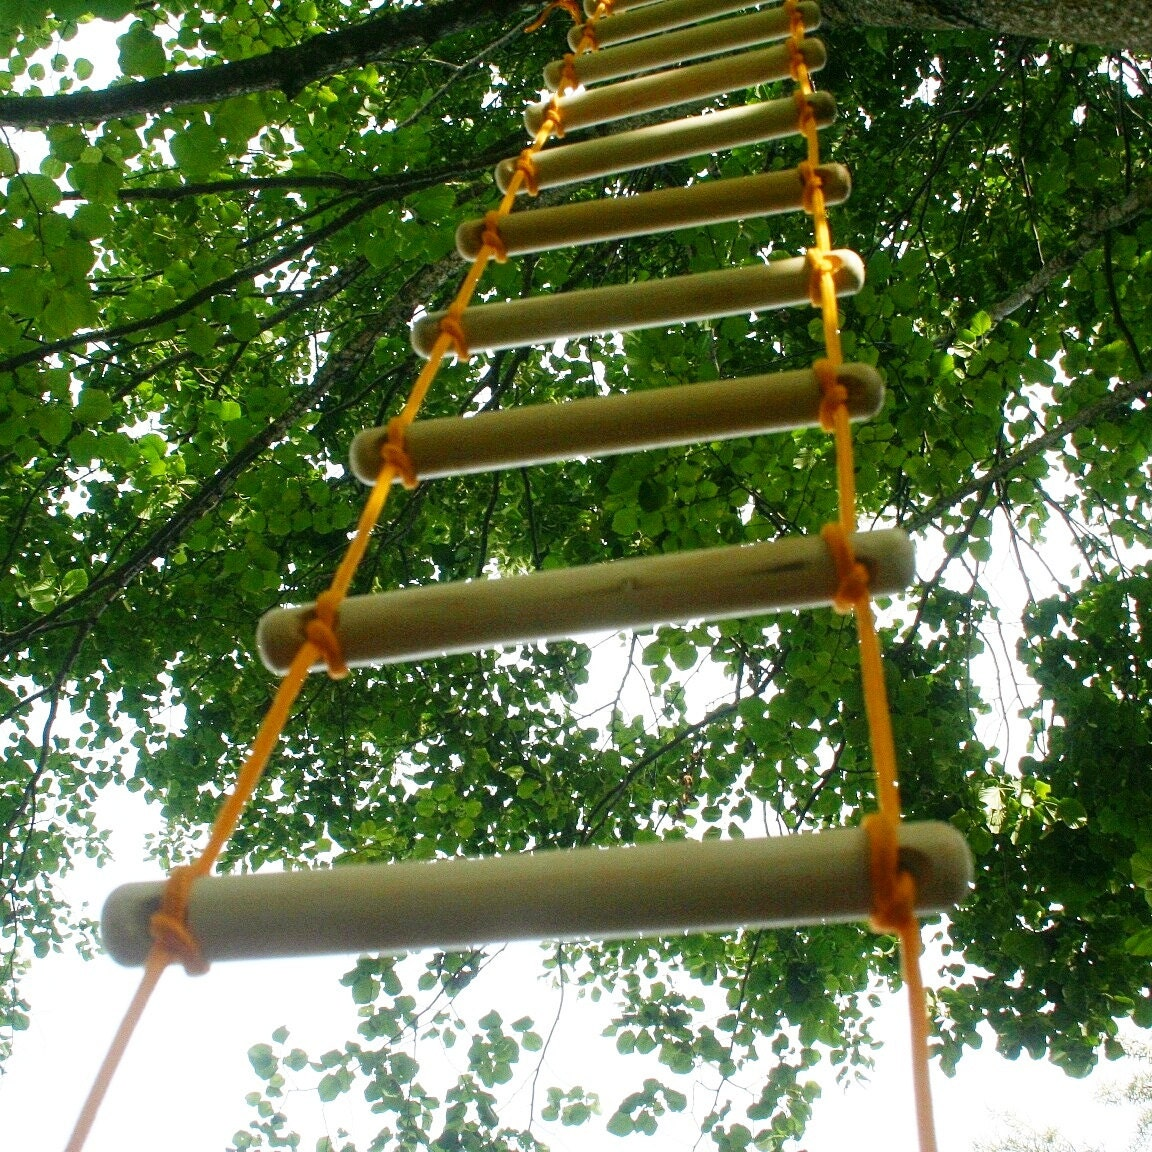 Climbing Rope Ladder 3 30 Feet 1 10m Long 1 Foot 30 Cm